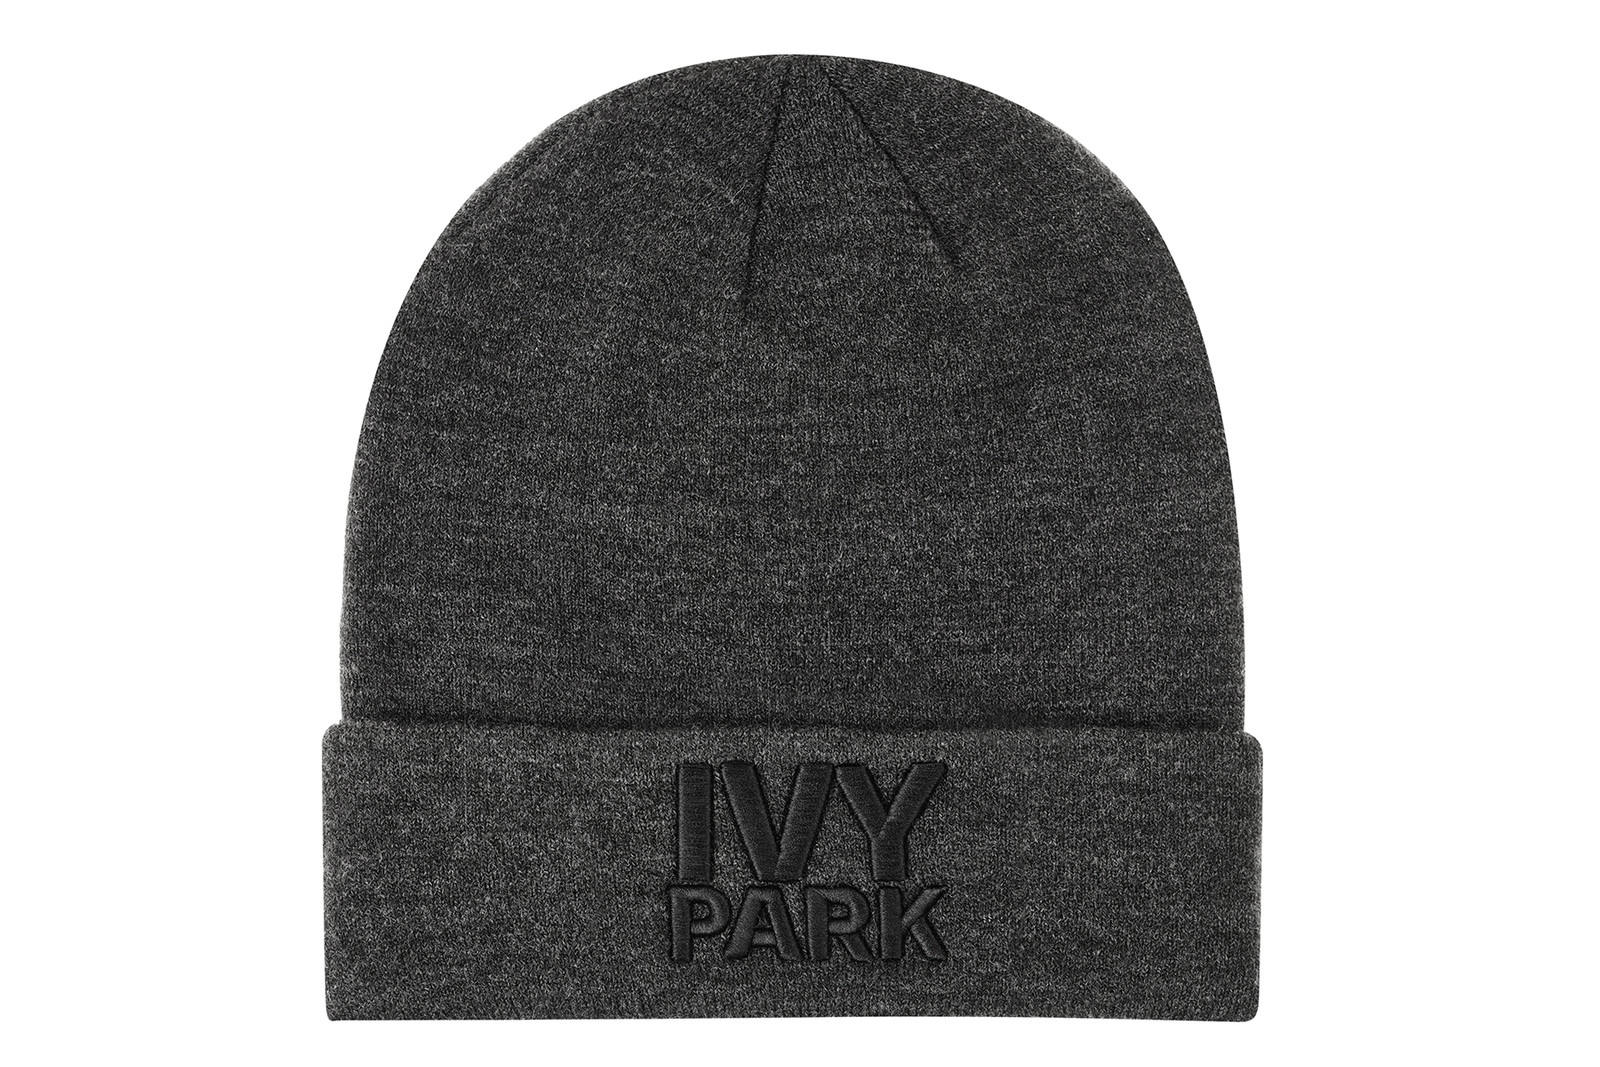 IVY PARK 2017 Resort Collection